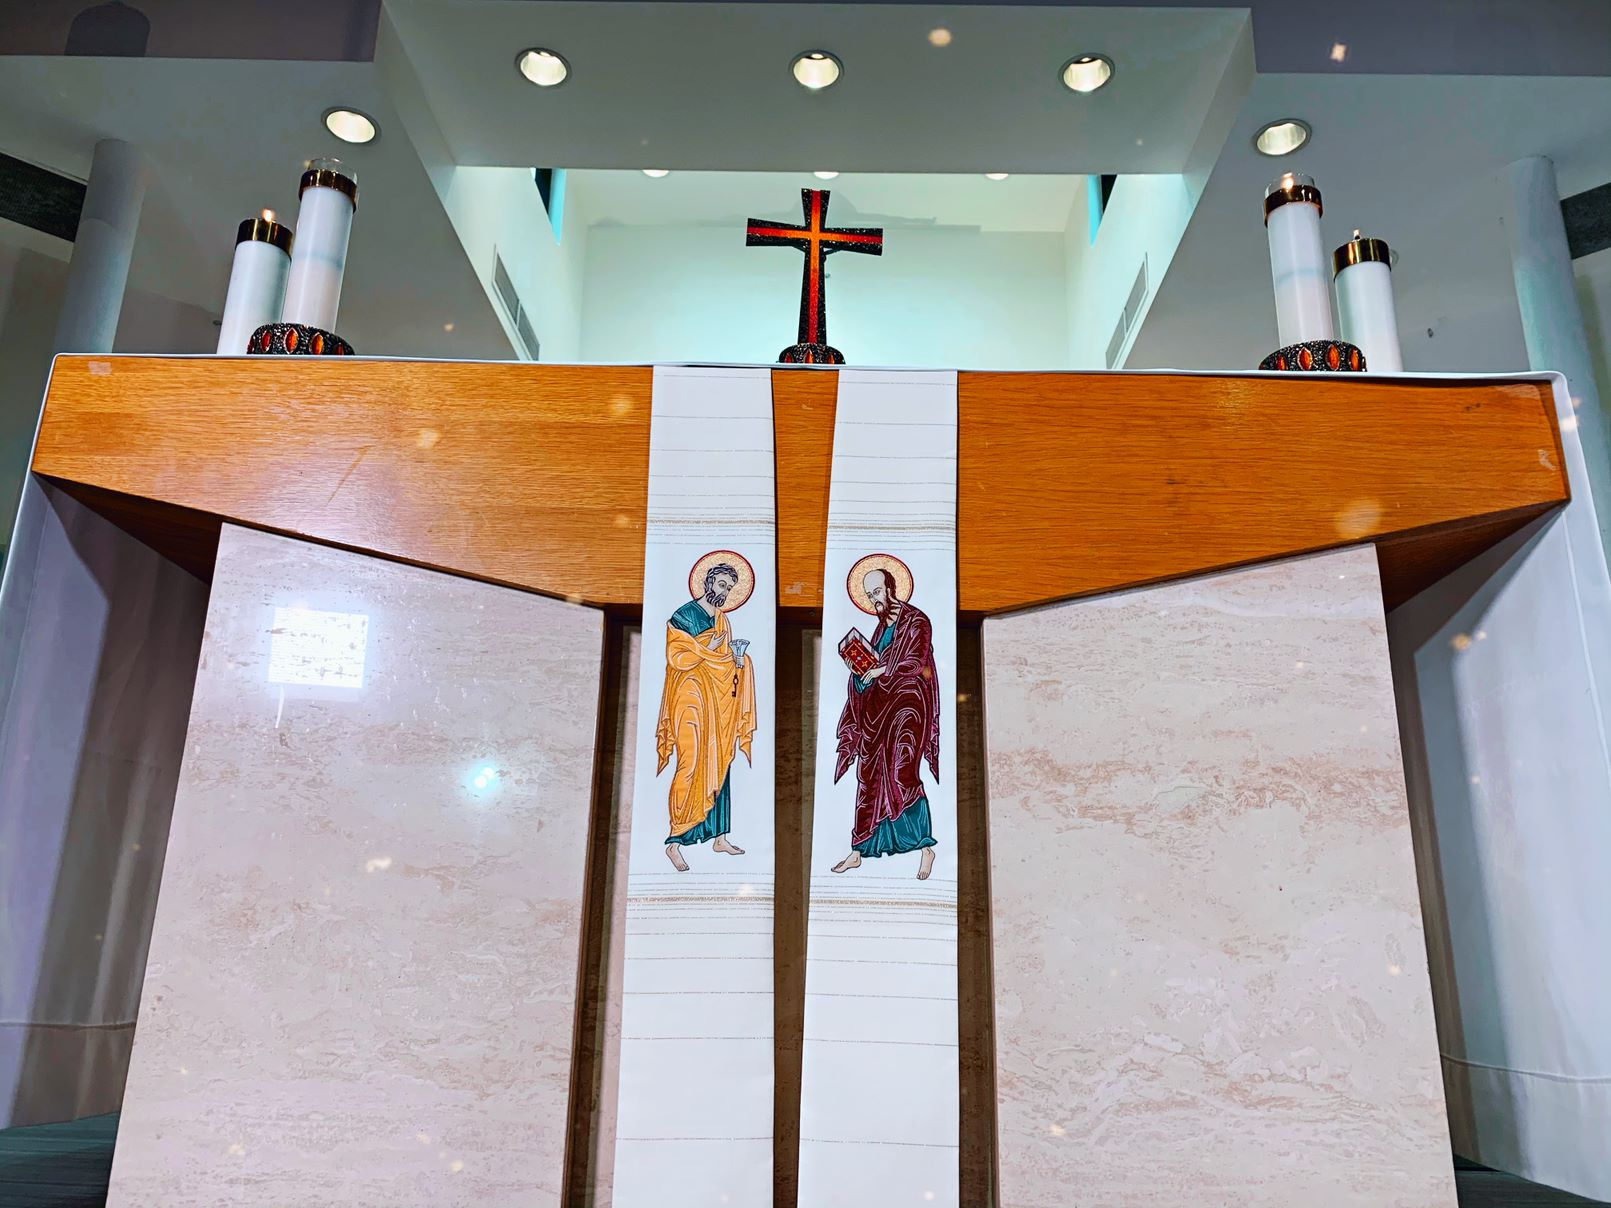 Image of Fr. Mario's Stole of Sts. Peter and Paul on the Alter Table